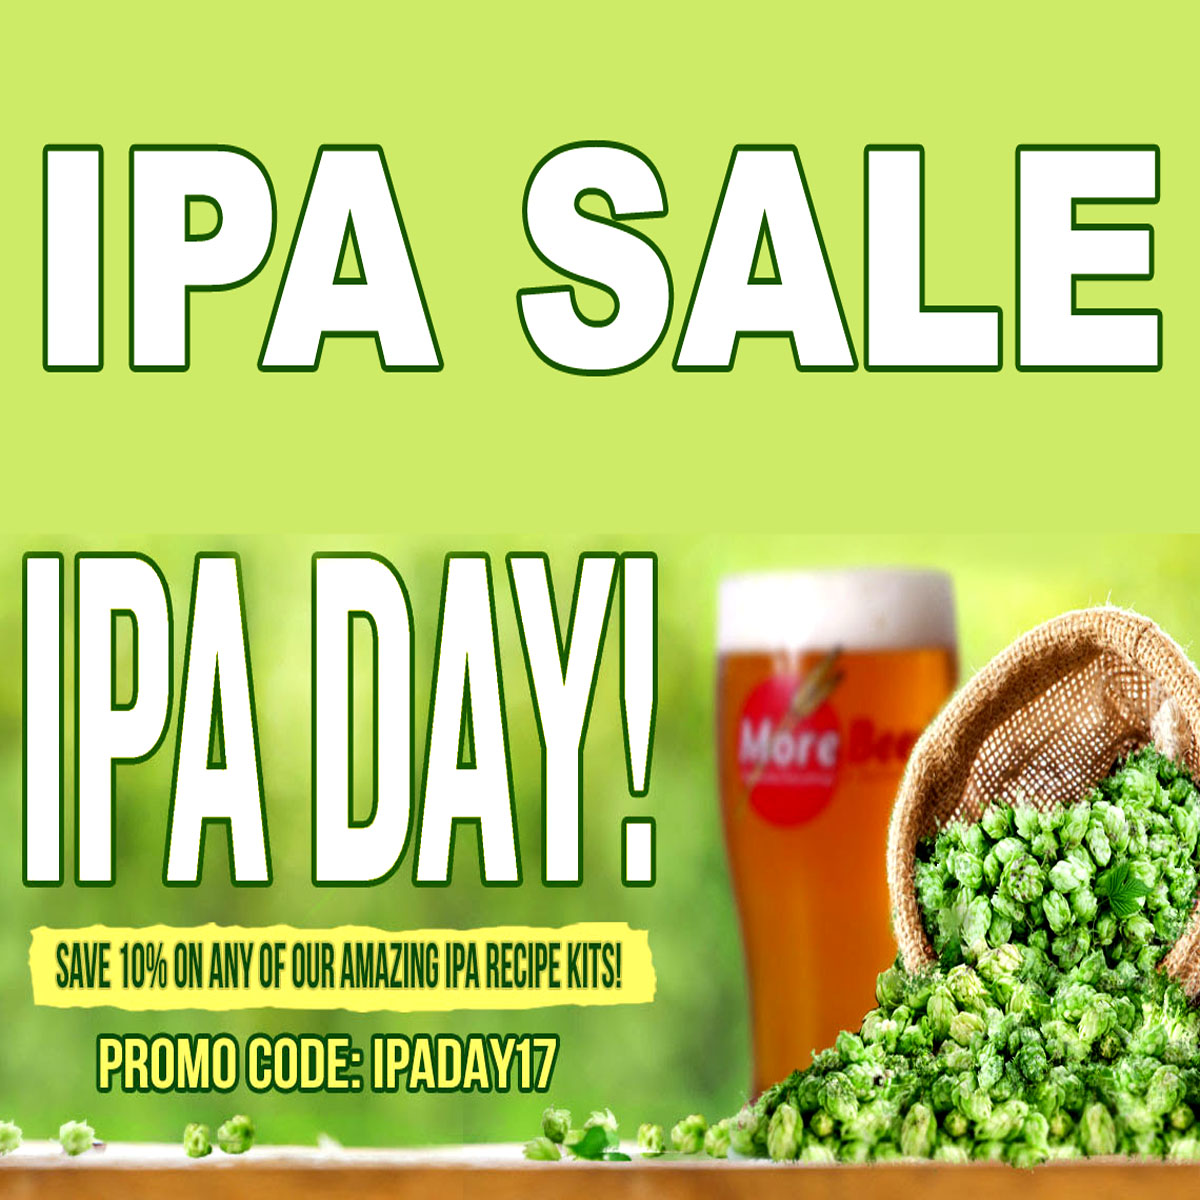 Save 10% On All Of MoreBeer's IPA Kits Including Pliny the Elder Coupon Code